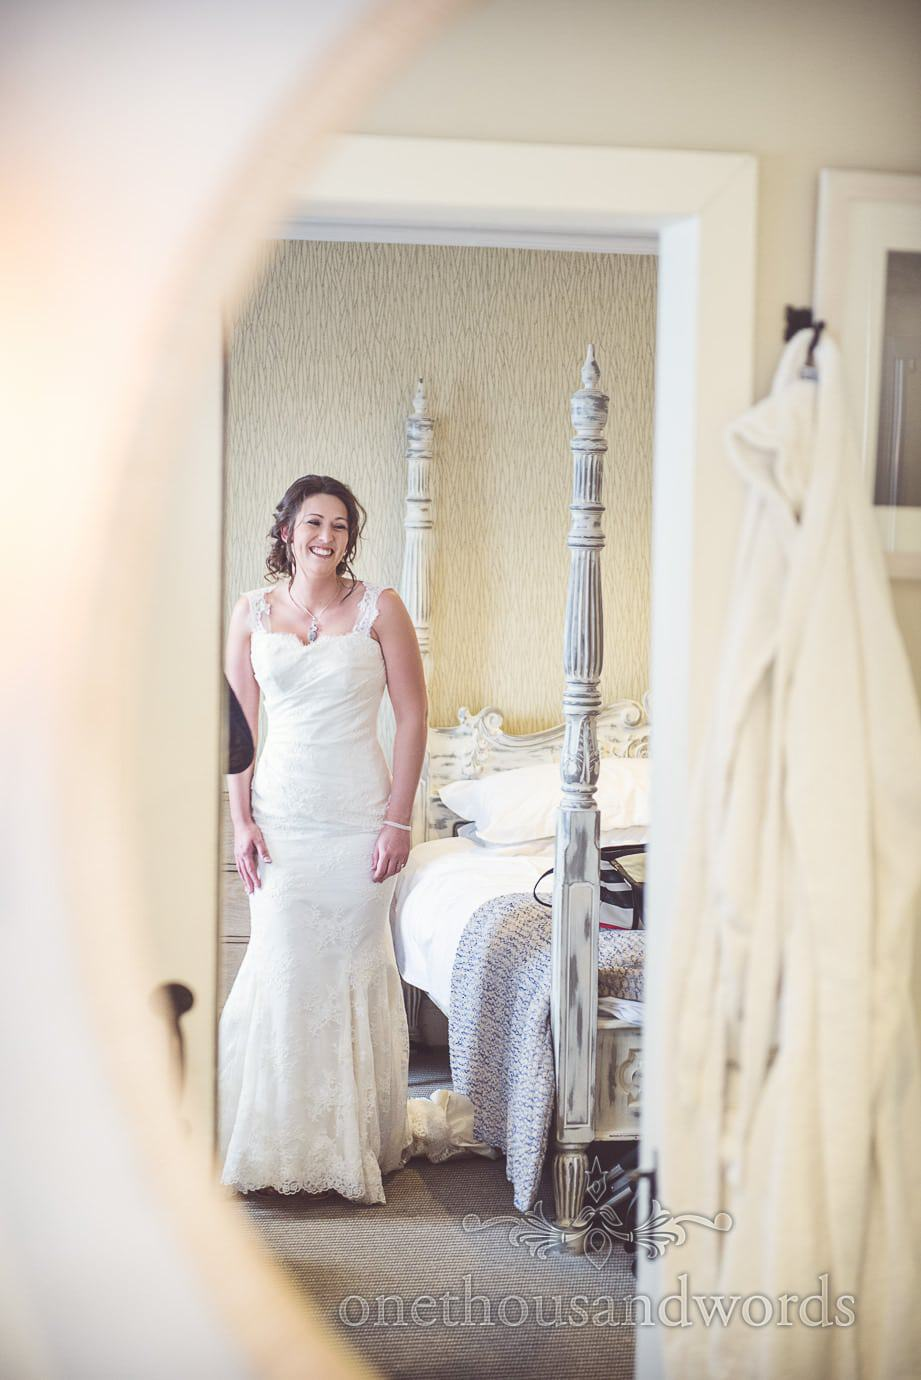 Bride in white trumpet wedding dress looks in full length mirror with white four poster bed